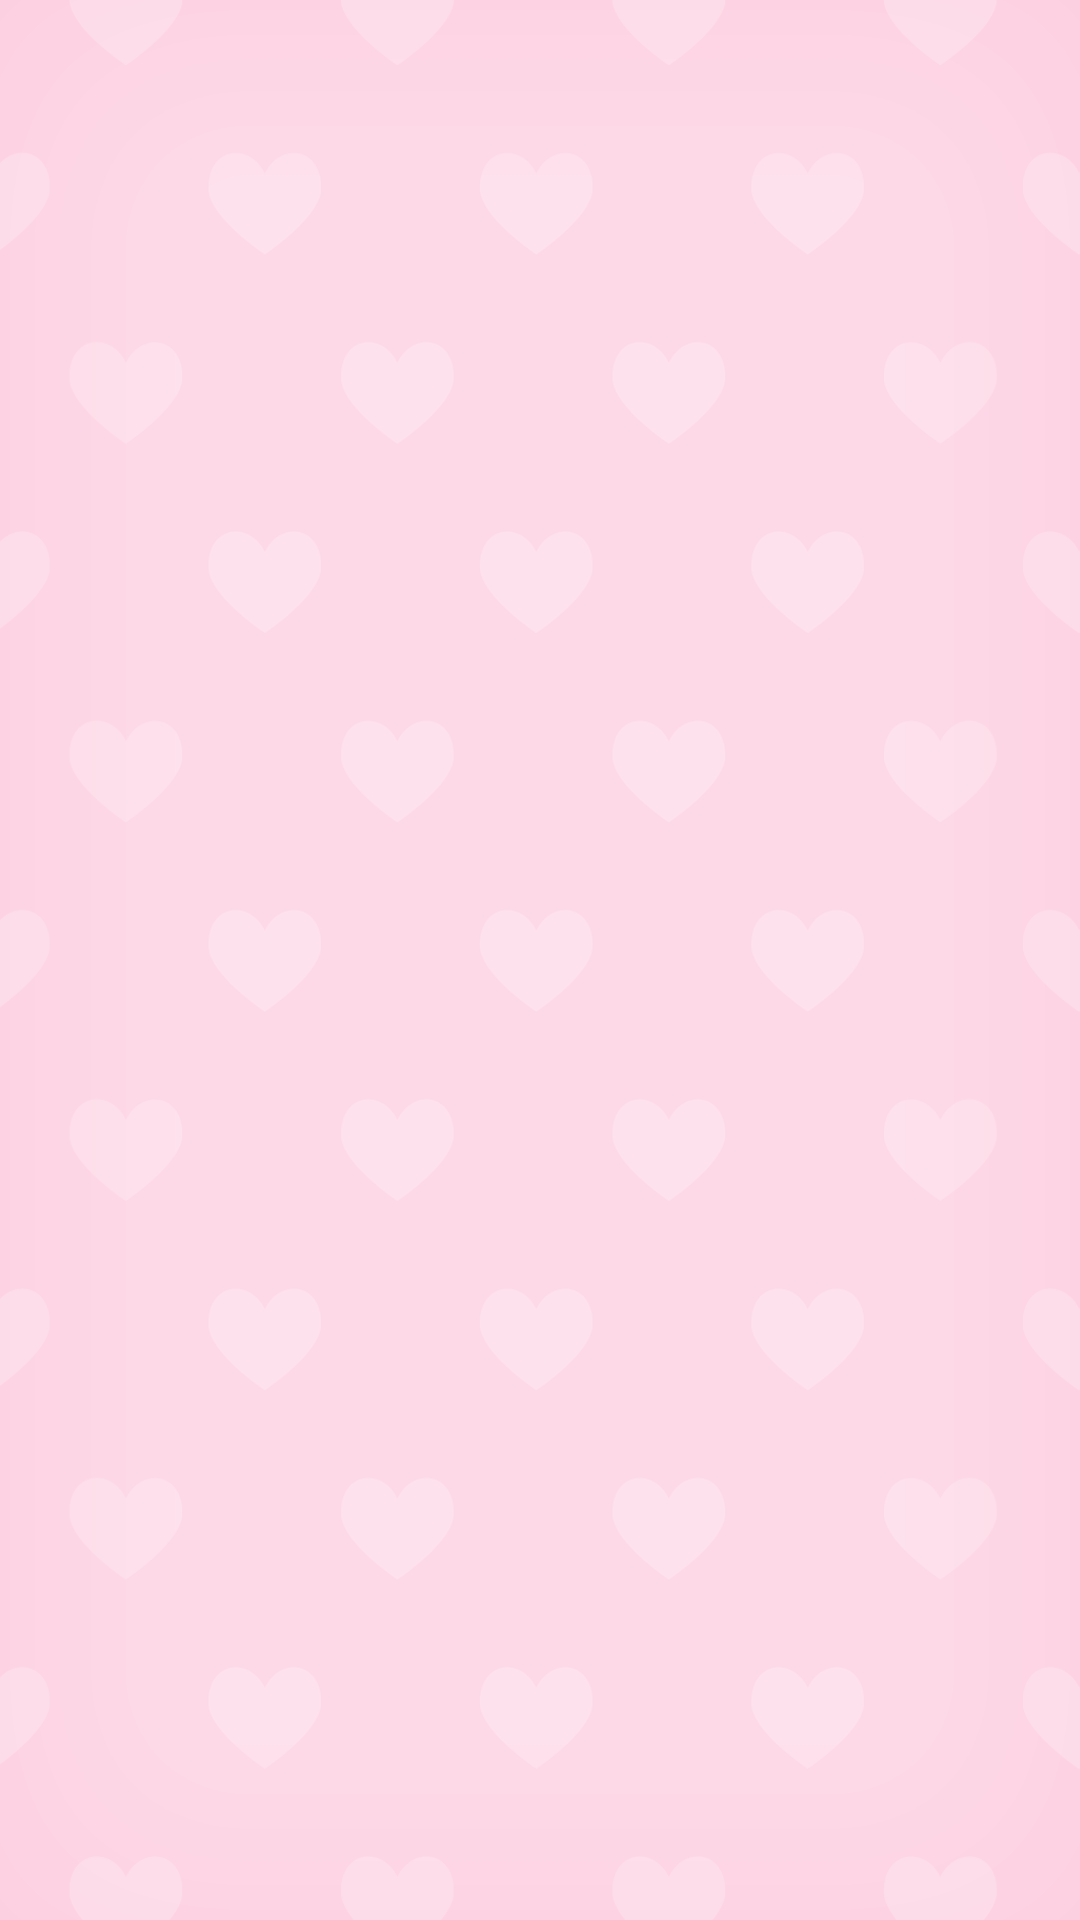 Wallpaper Hearts Pink